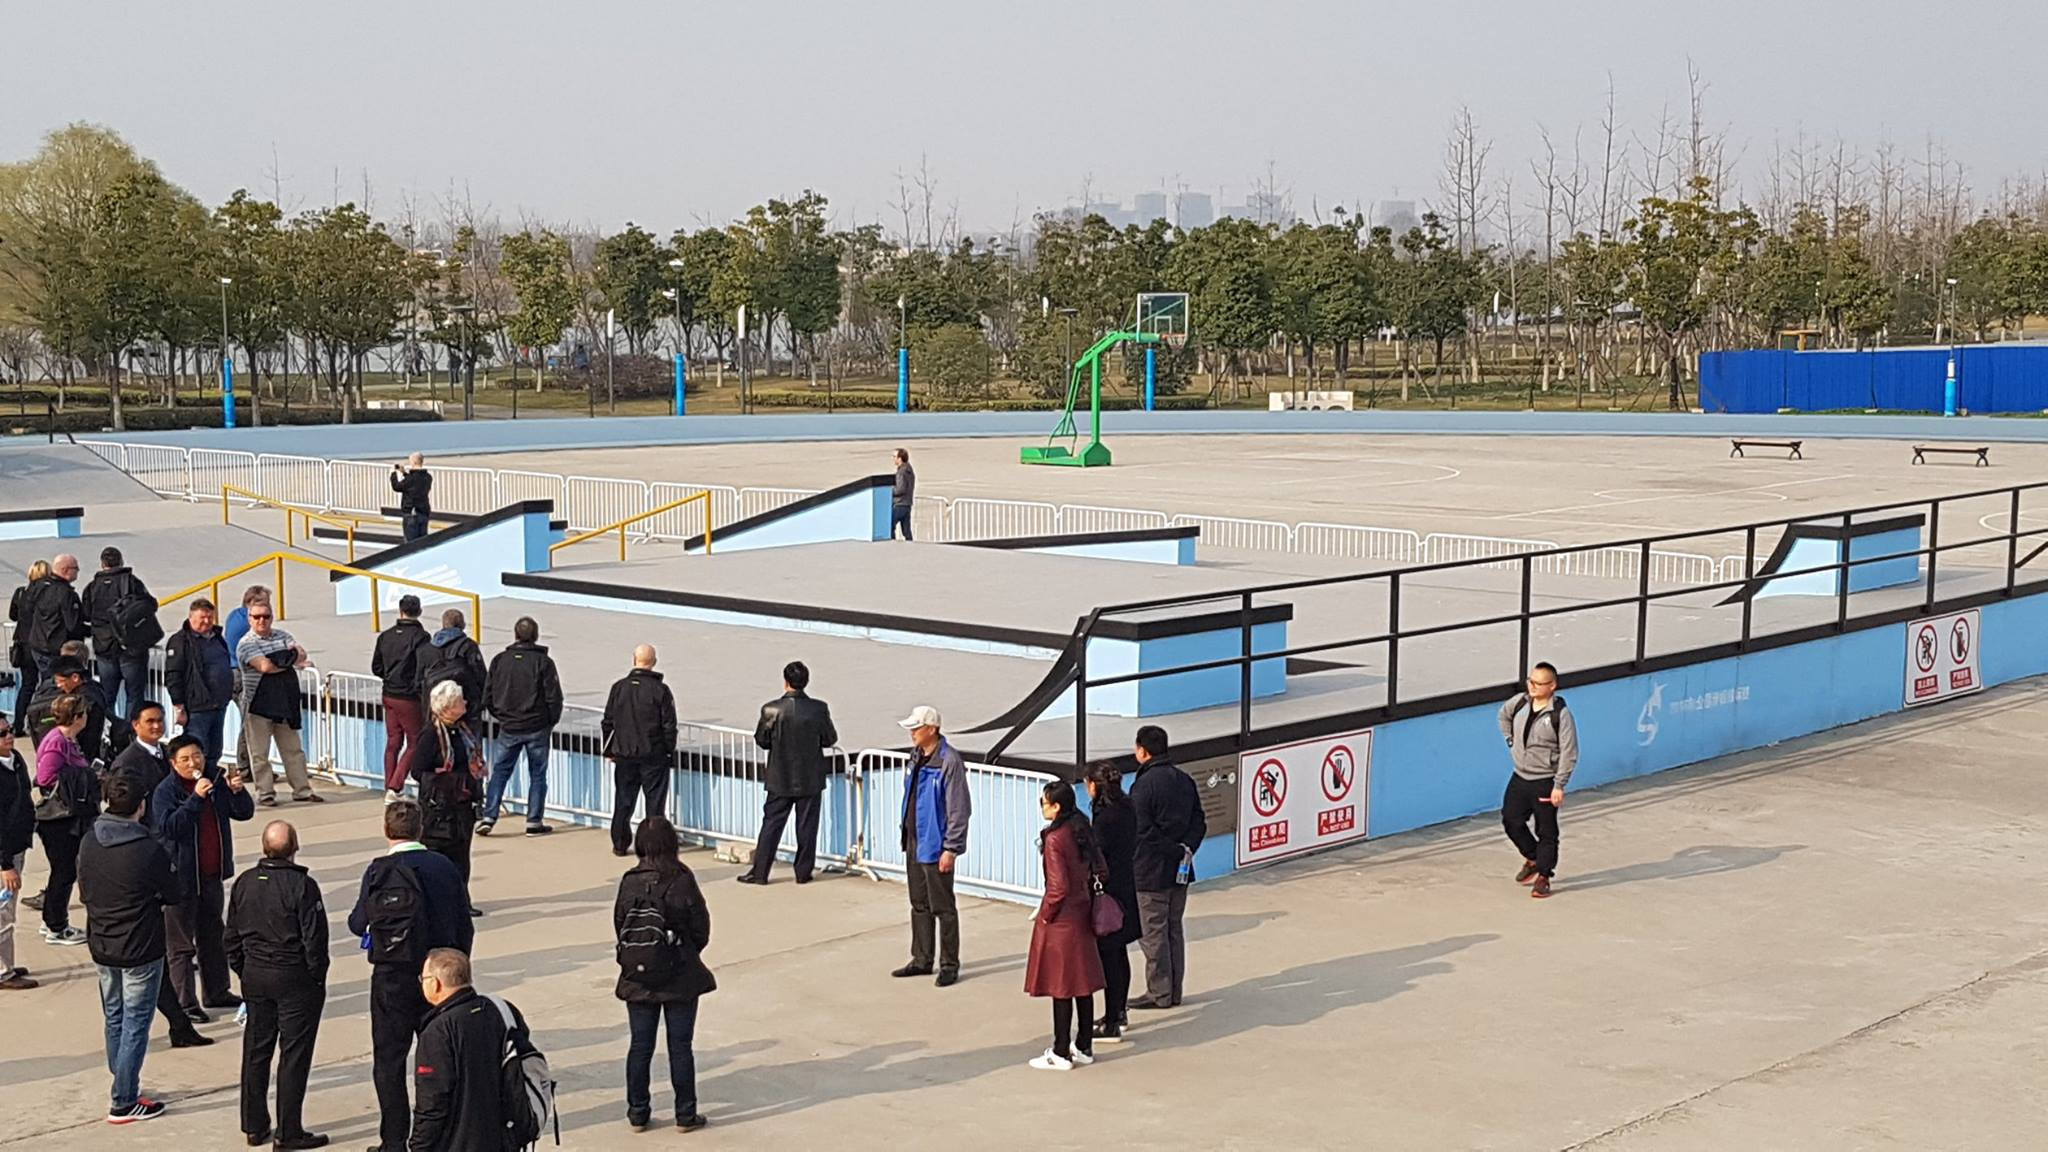 The competition venue is located close to the the SportsLab in the Chinese city, which hosted skateboarding events at the 2014 Youth Olympic Games ©Facebook